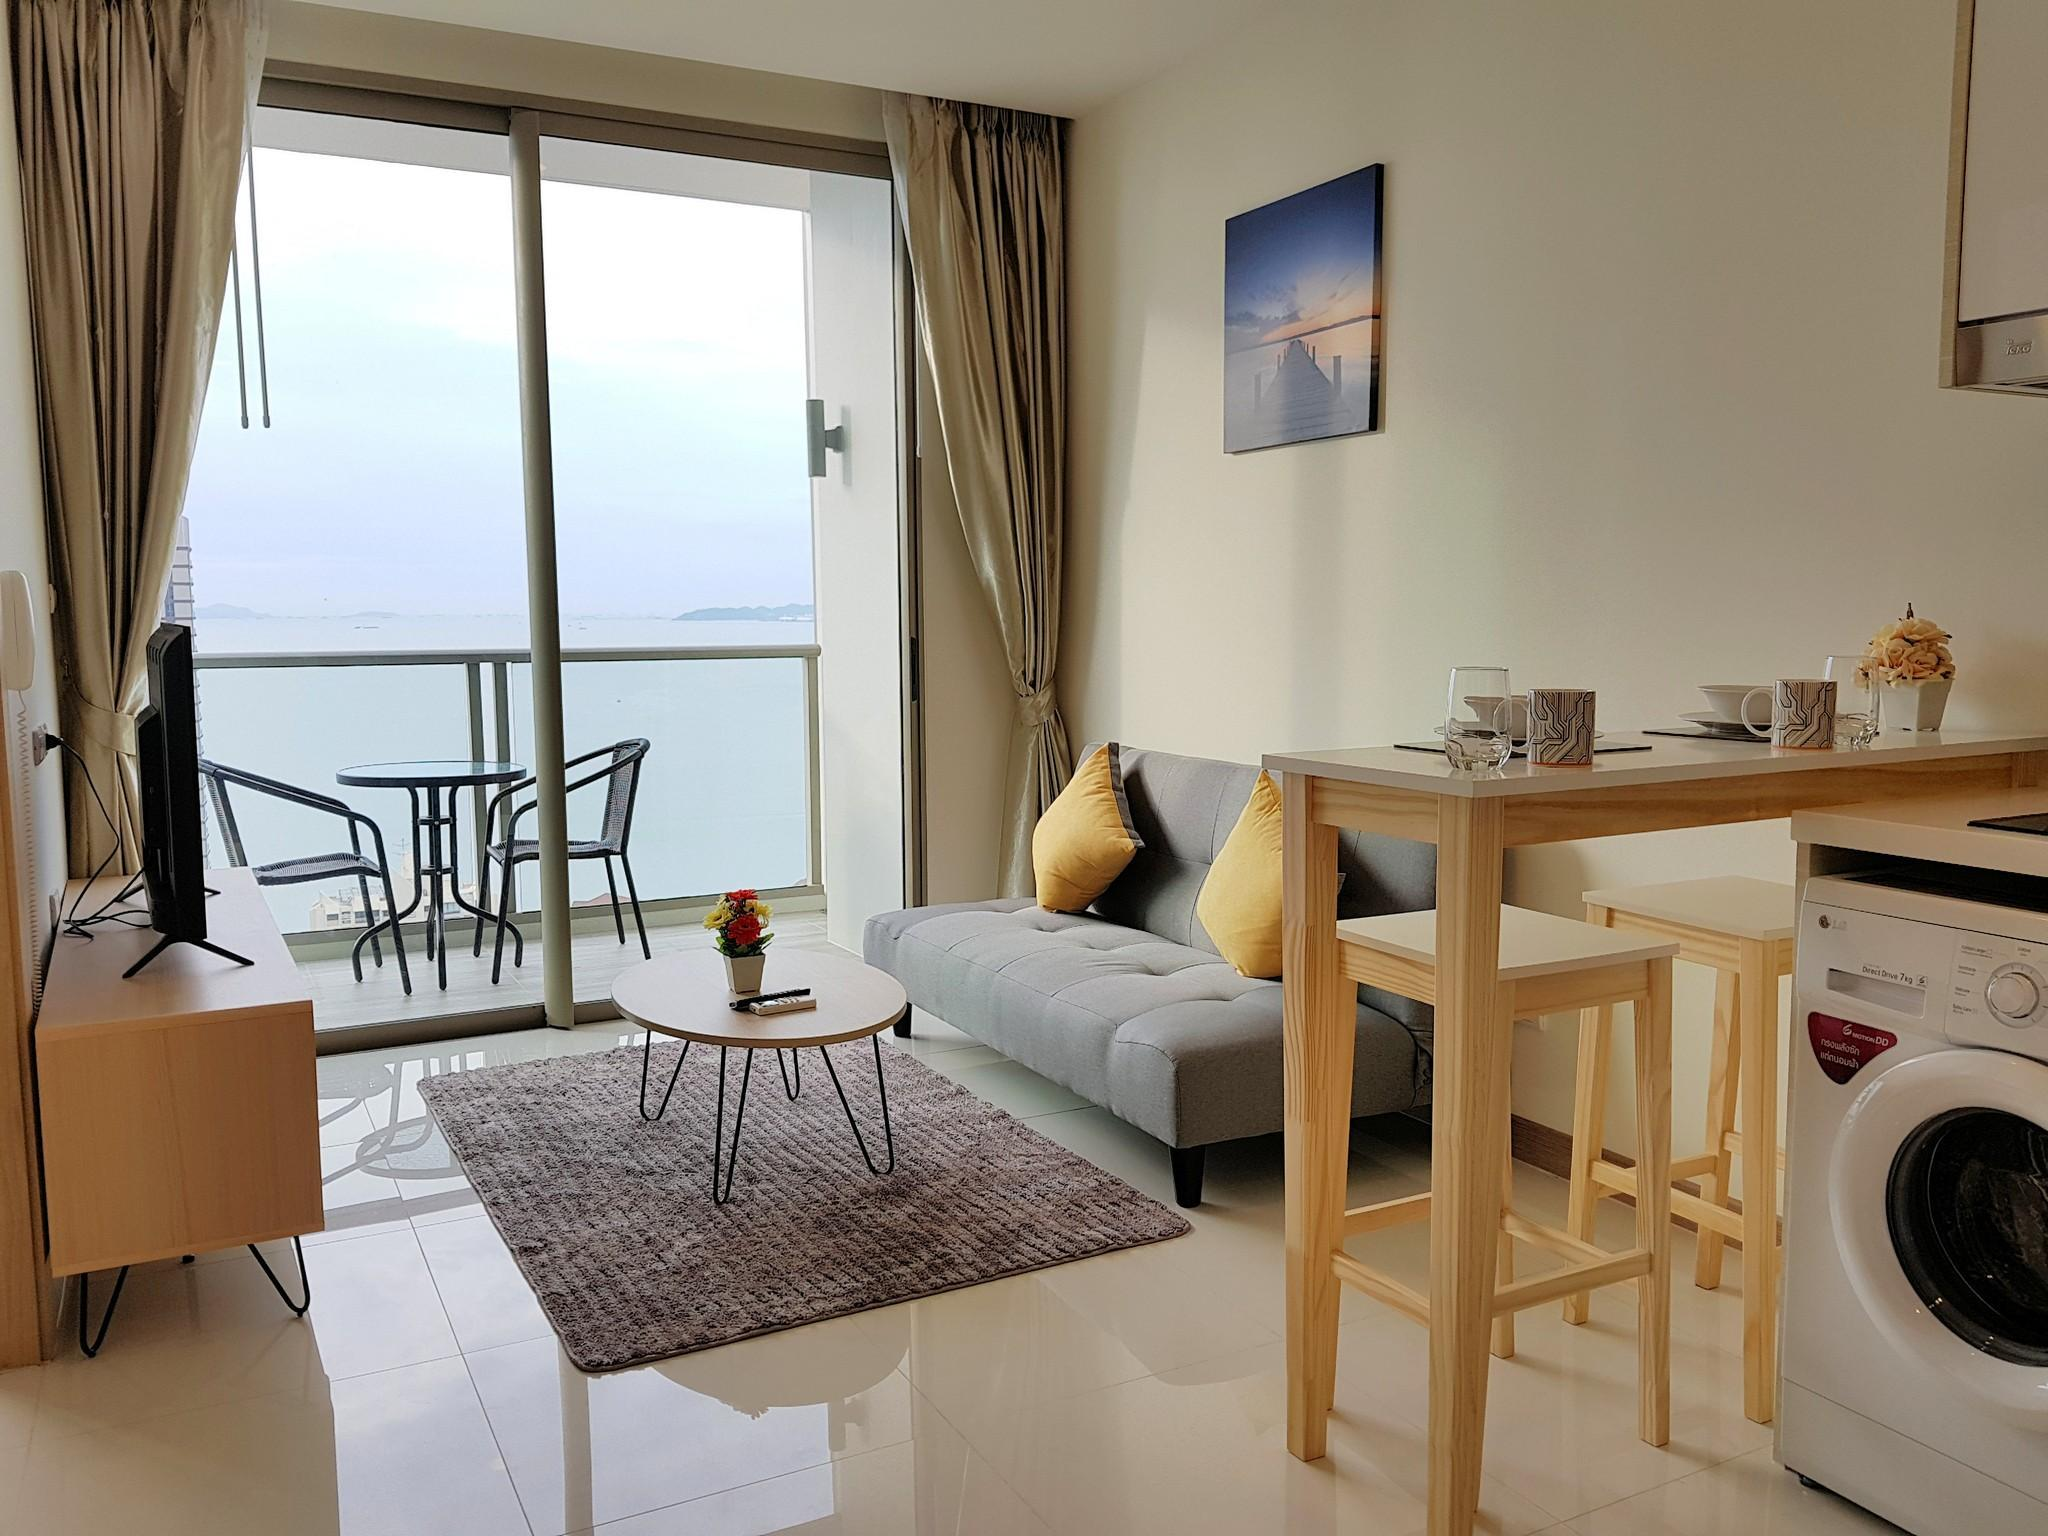 1 Bedroom With Sea View@Riviera By Pattaya Holiday